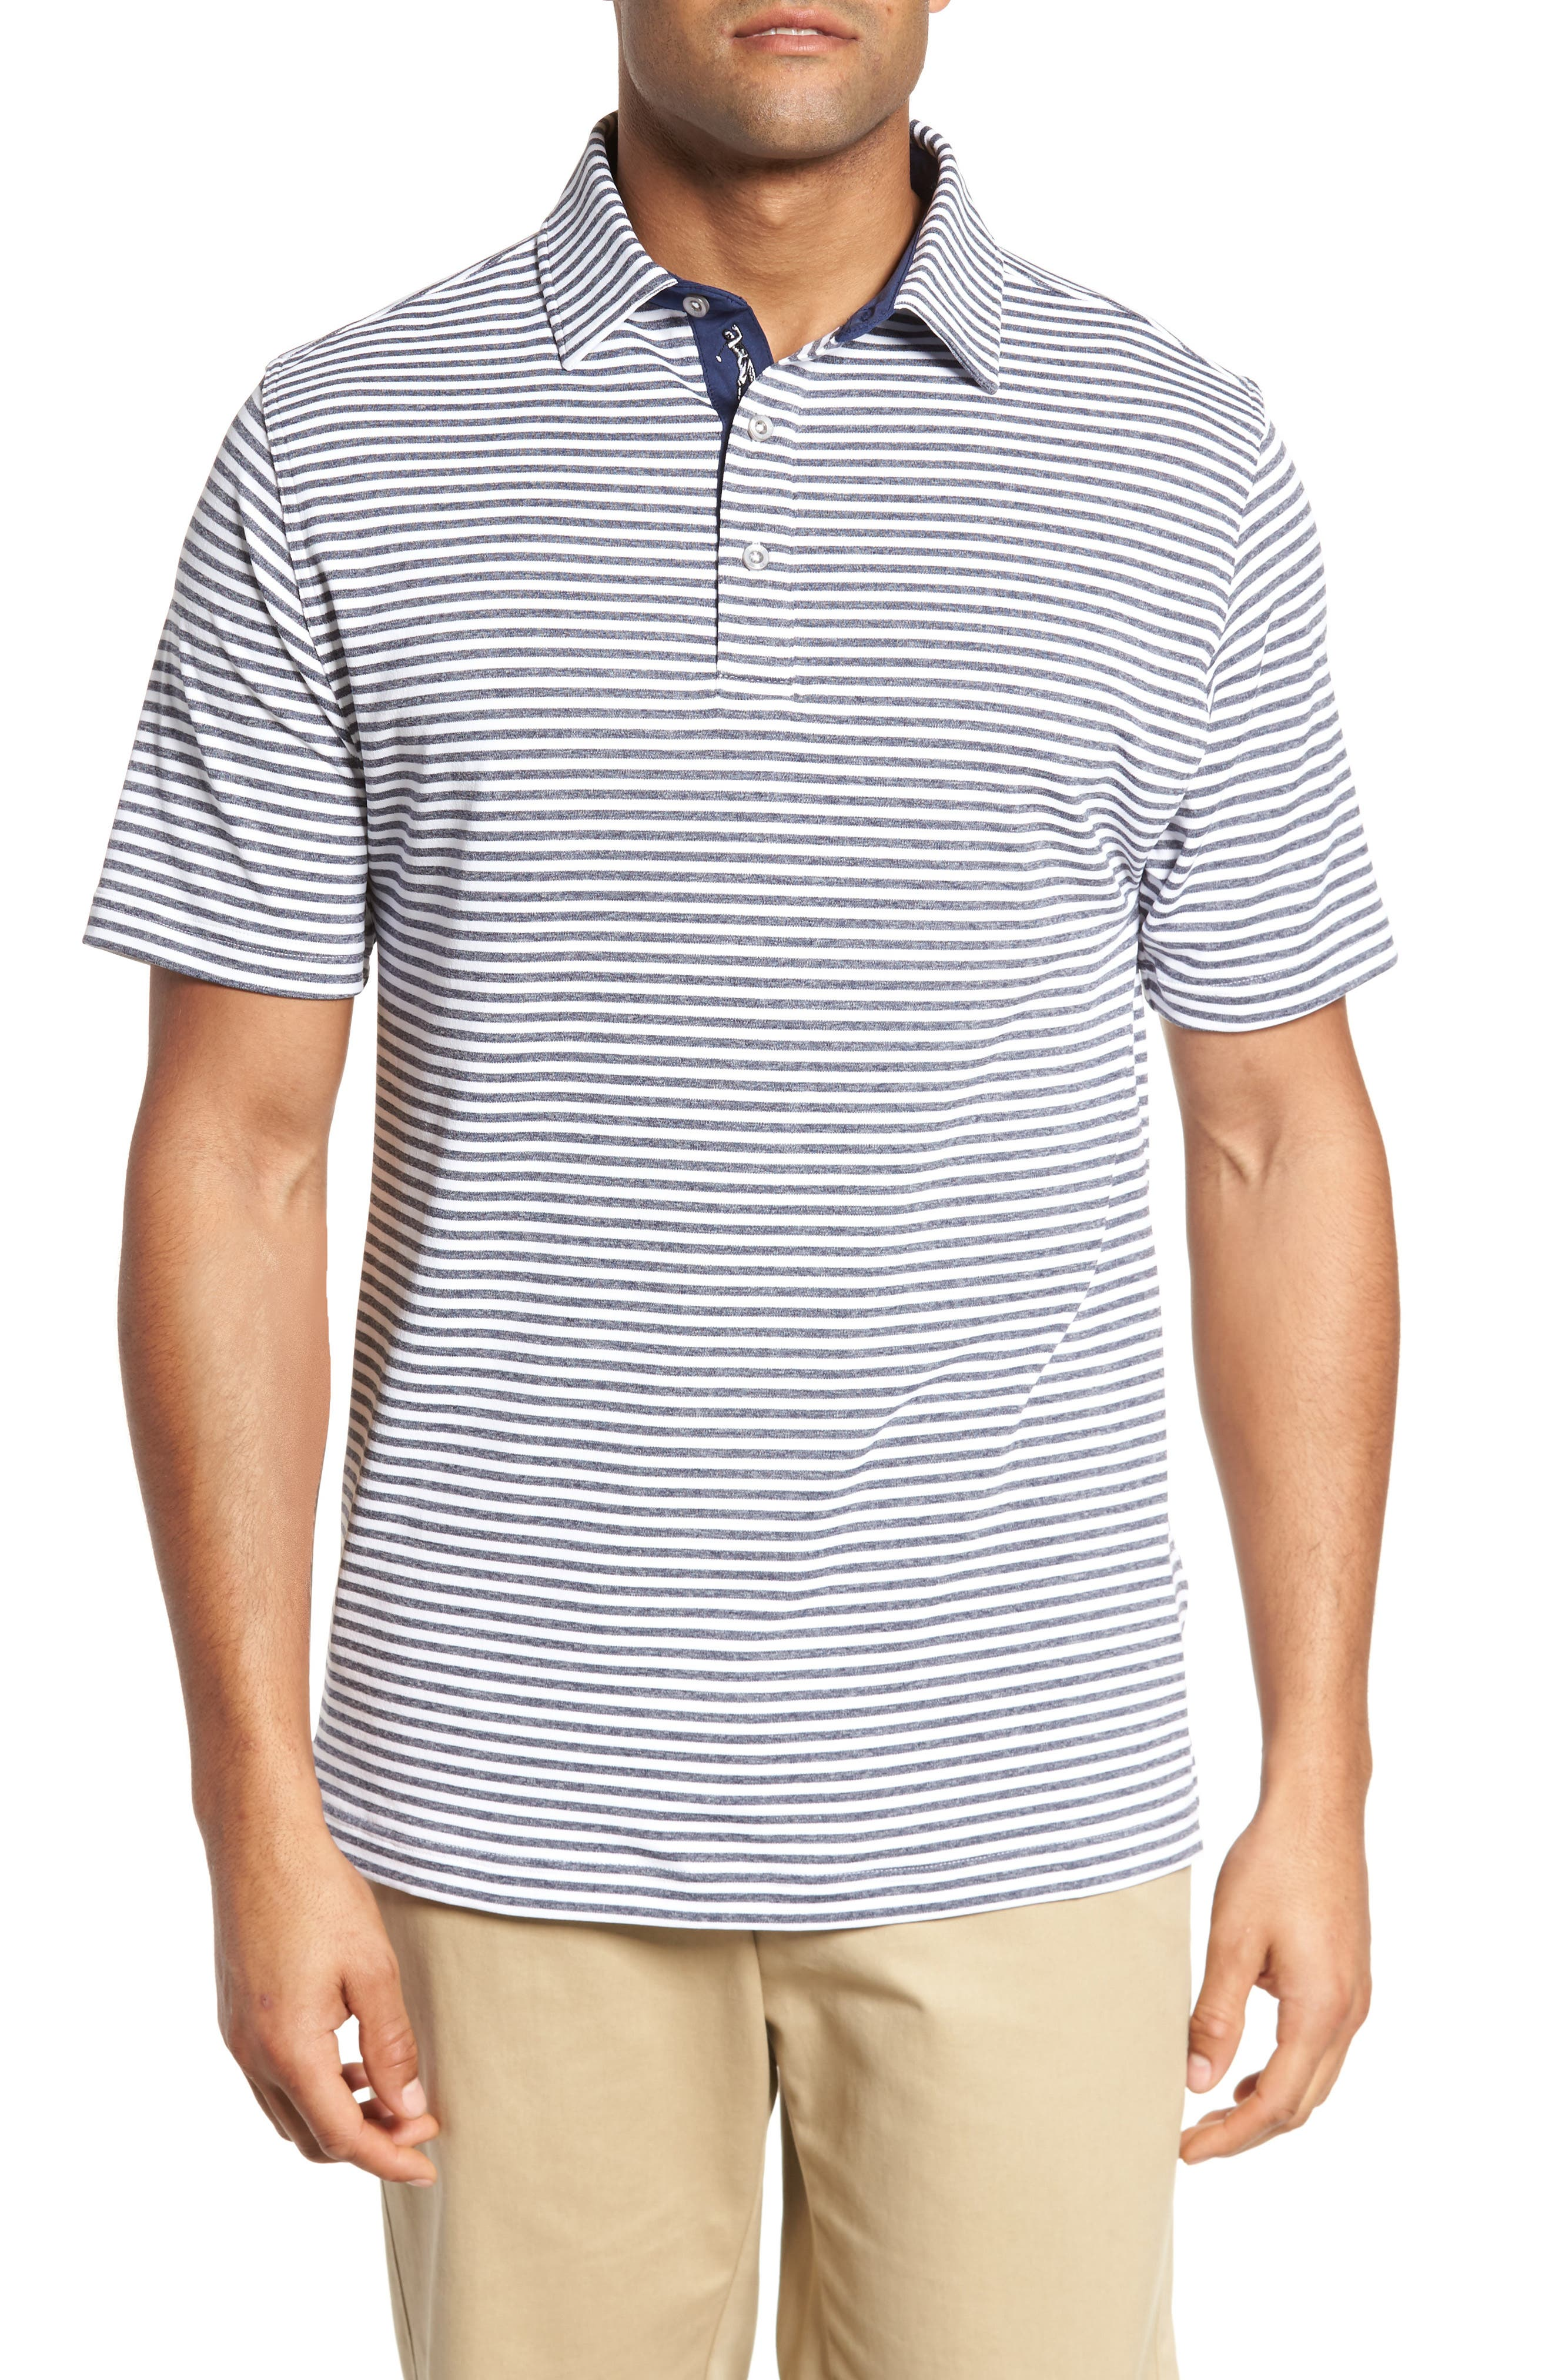 XH2O Tranquil Stripe Jersey Polo,                             Main thumbnail 1, color,                             White